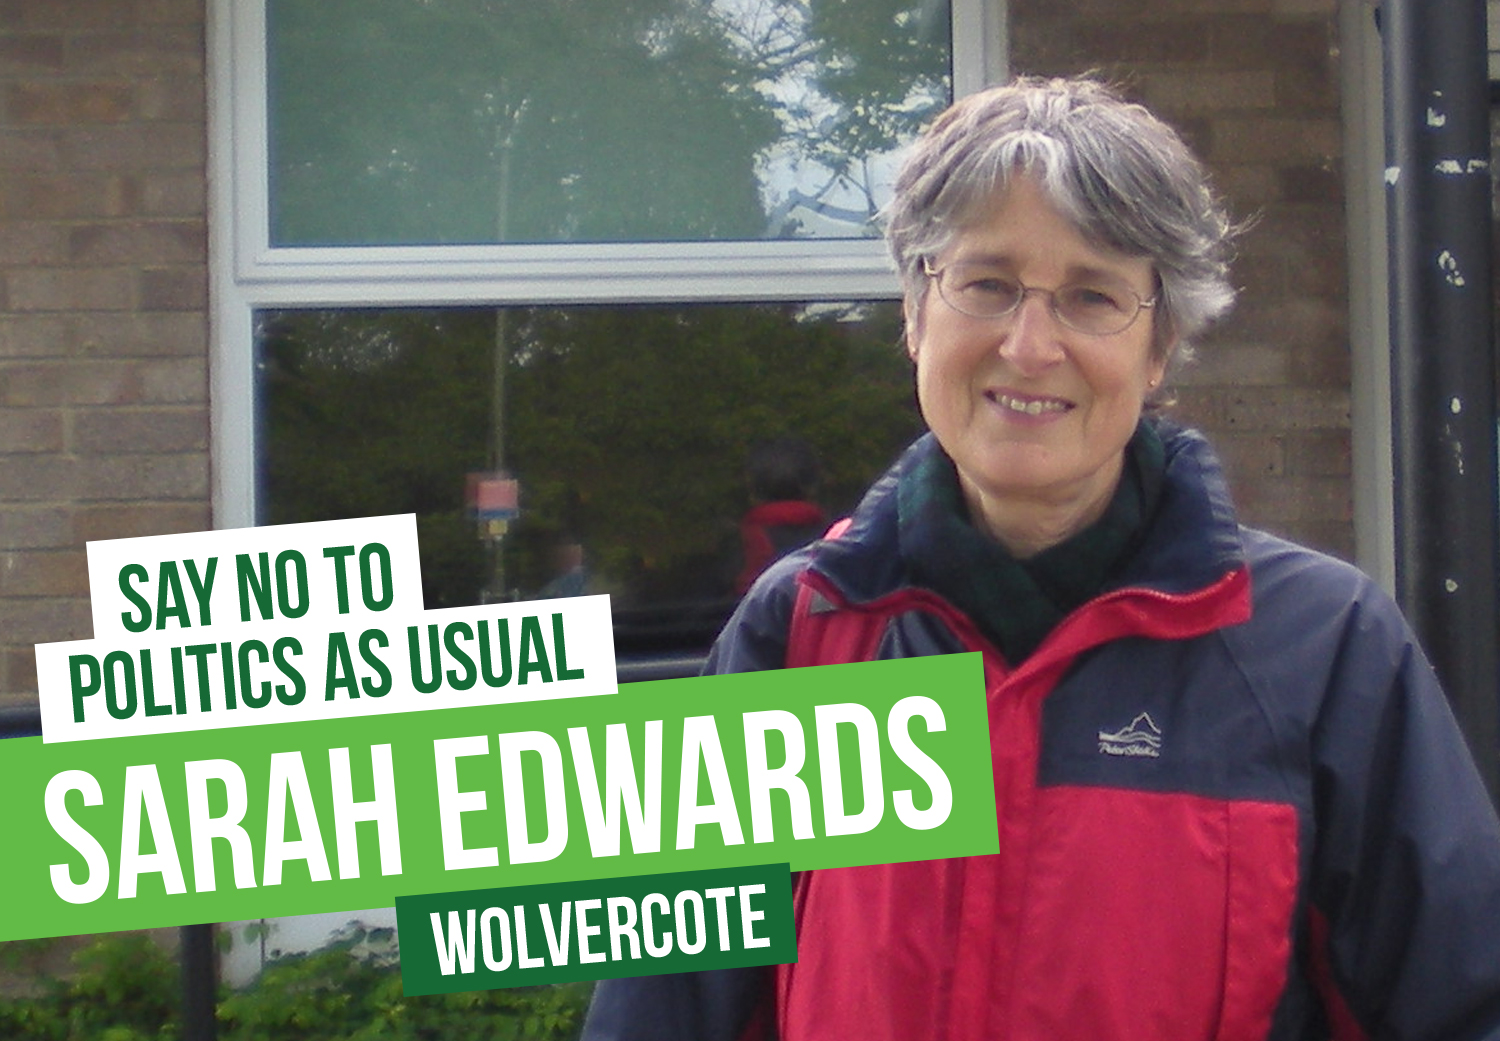 Sarah Edwards, candidate for Wolvercote